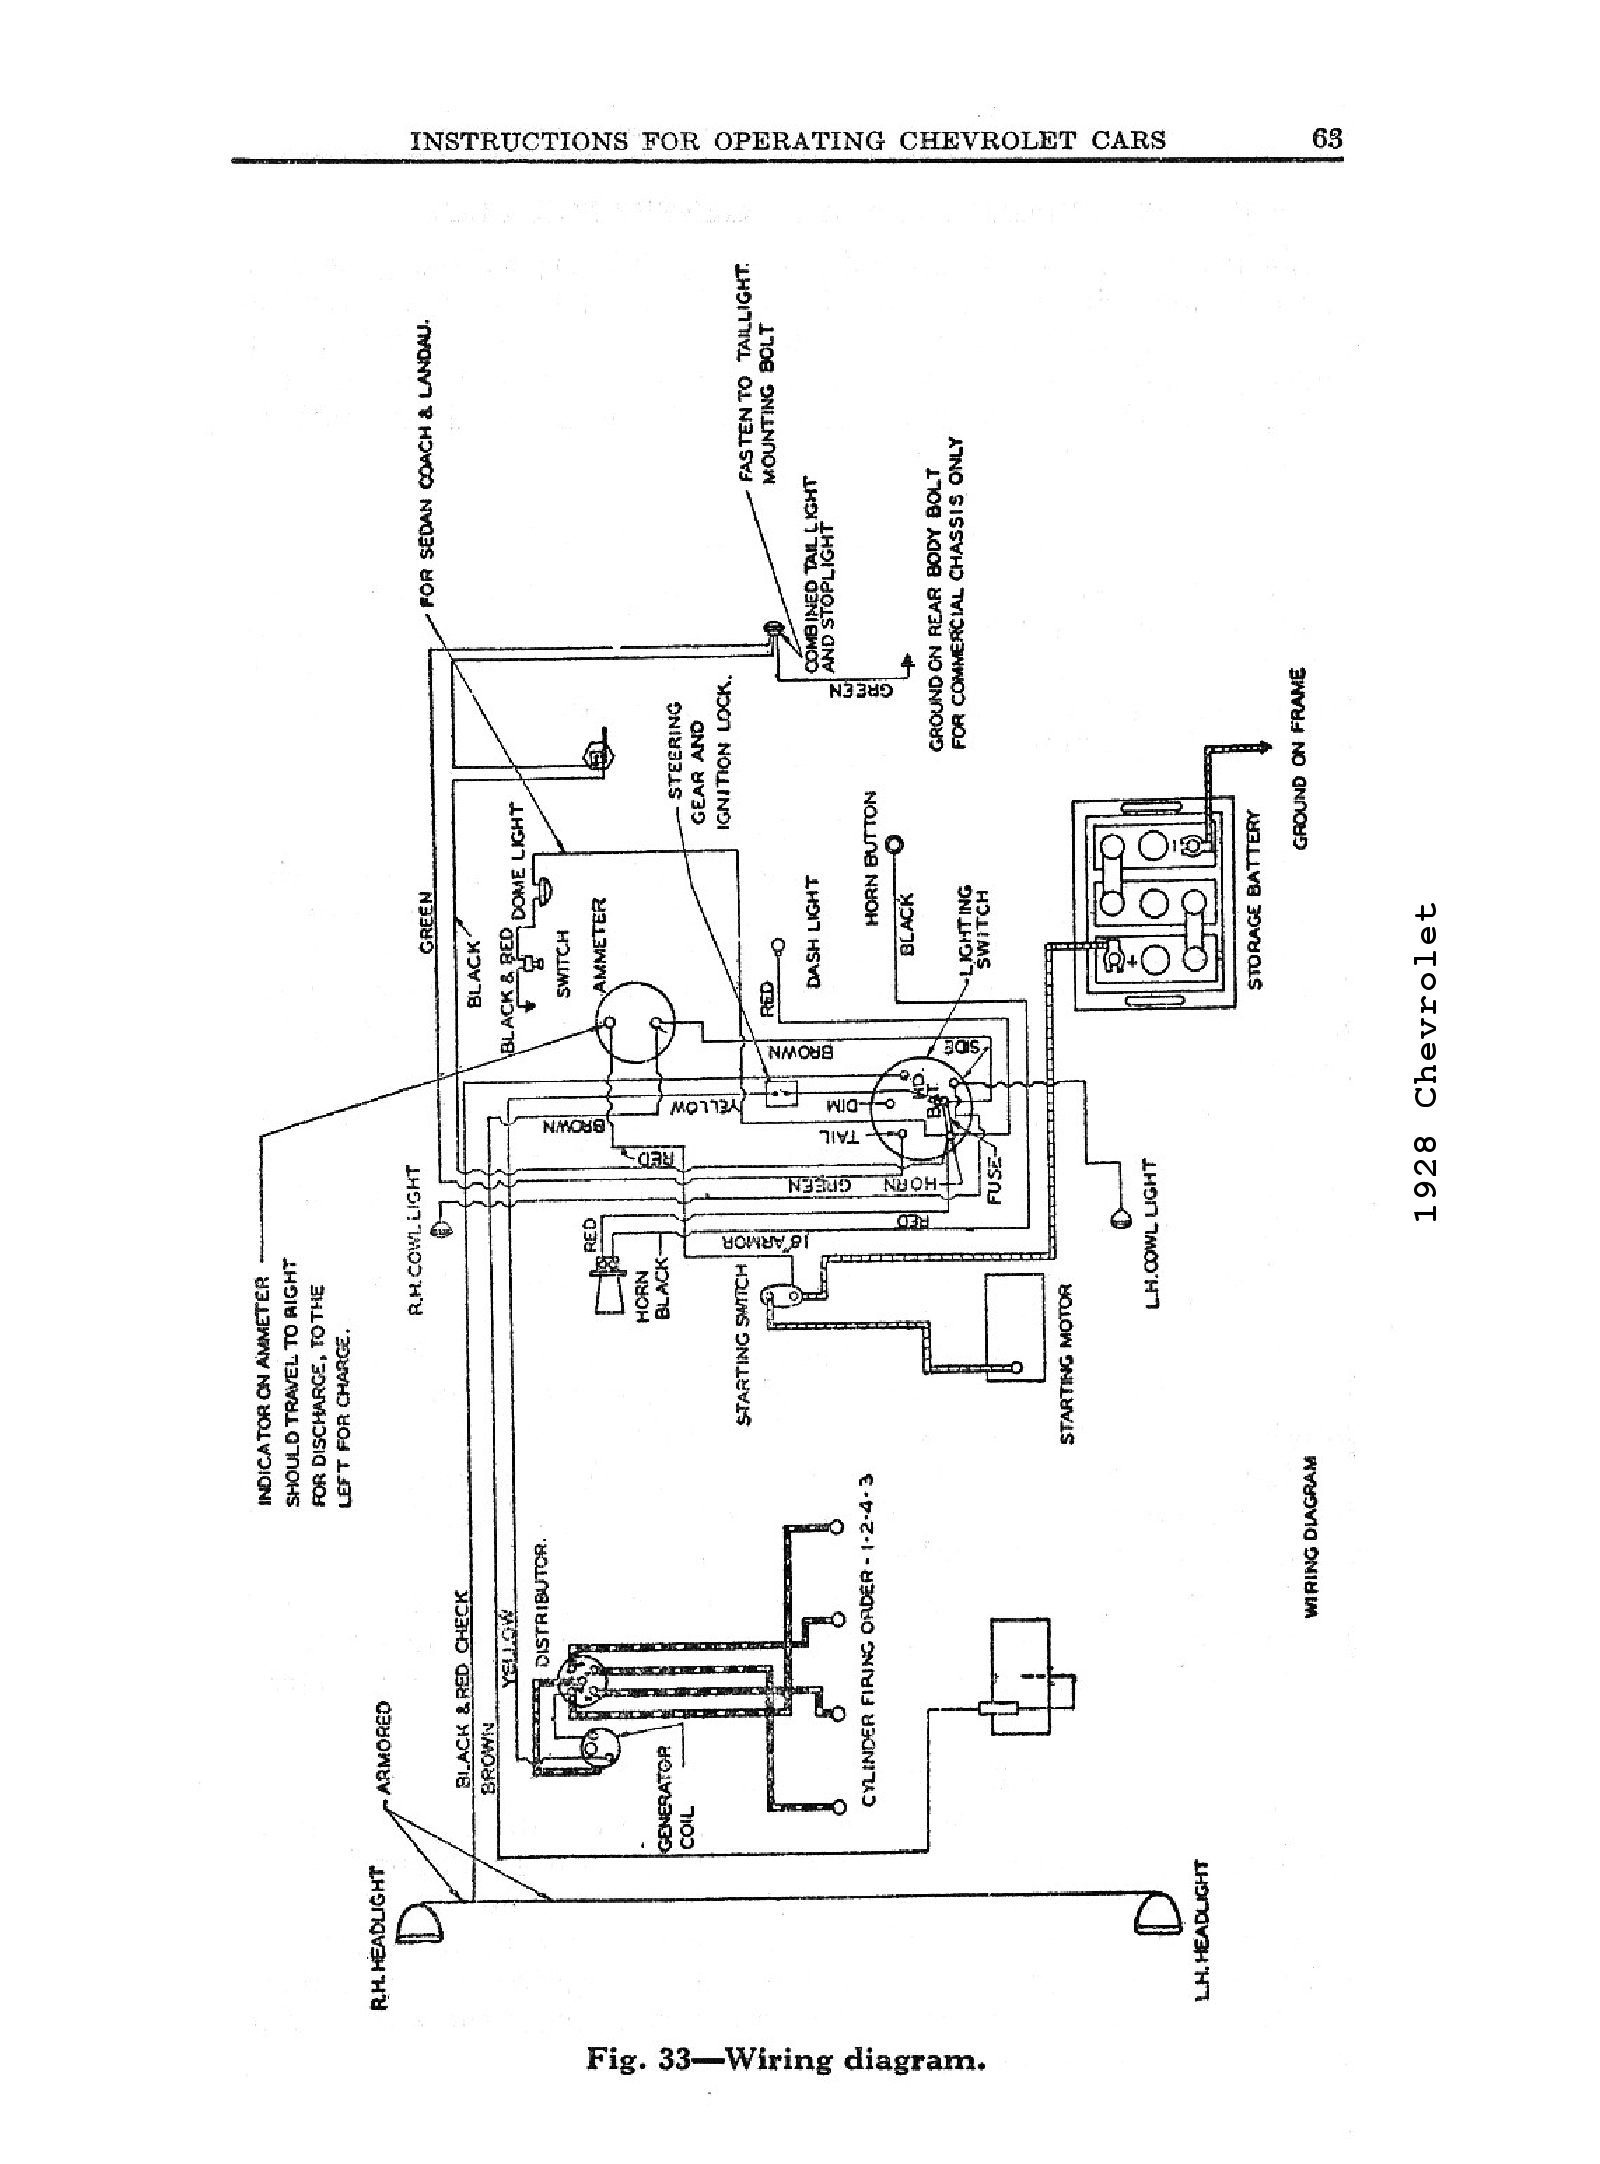 1956 Chevy Steering Column Wiring Diagram : 41 Wiring